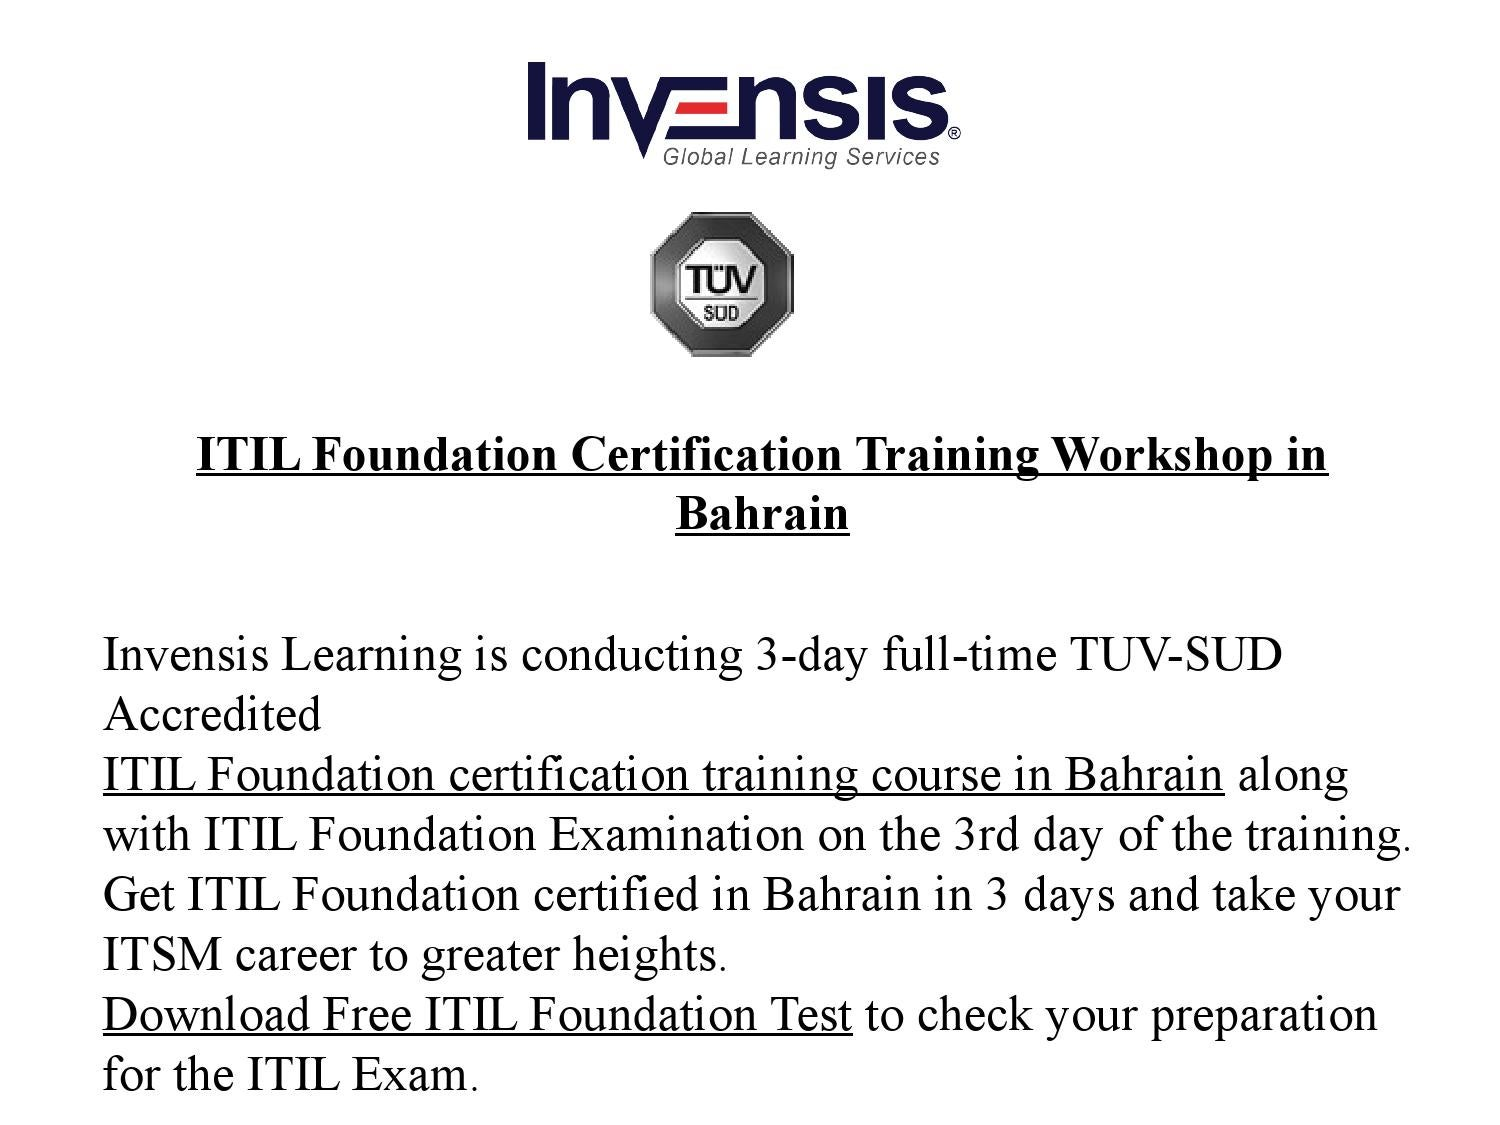 Itil Foundation Certification Training And Examination In Bahrain By